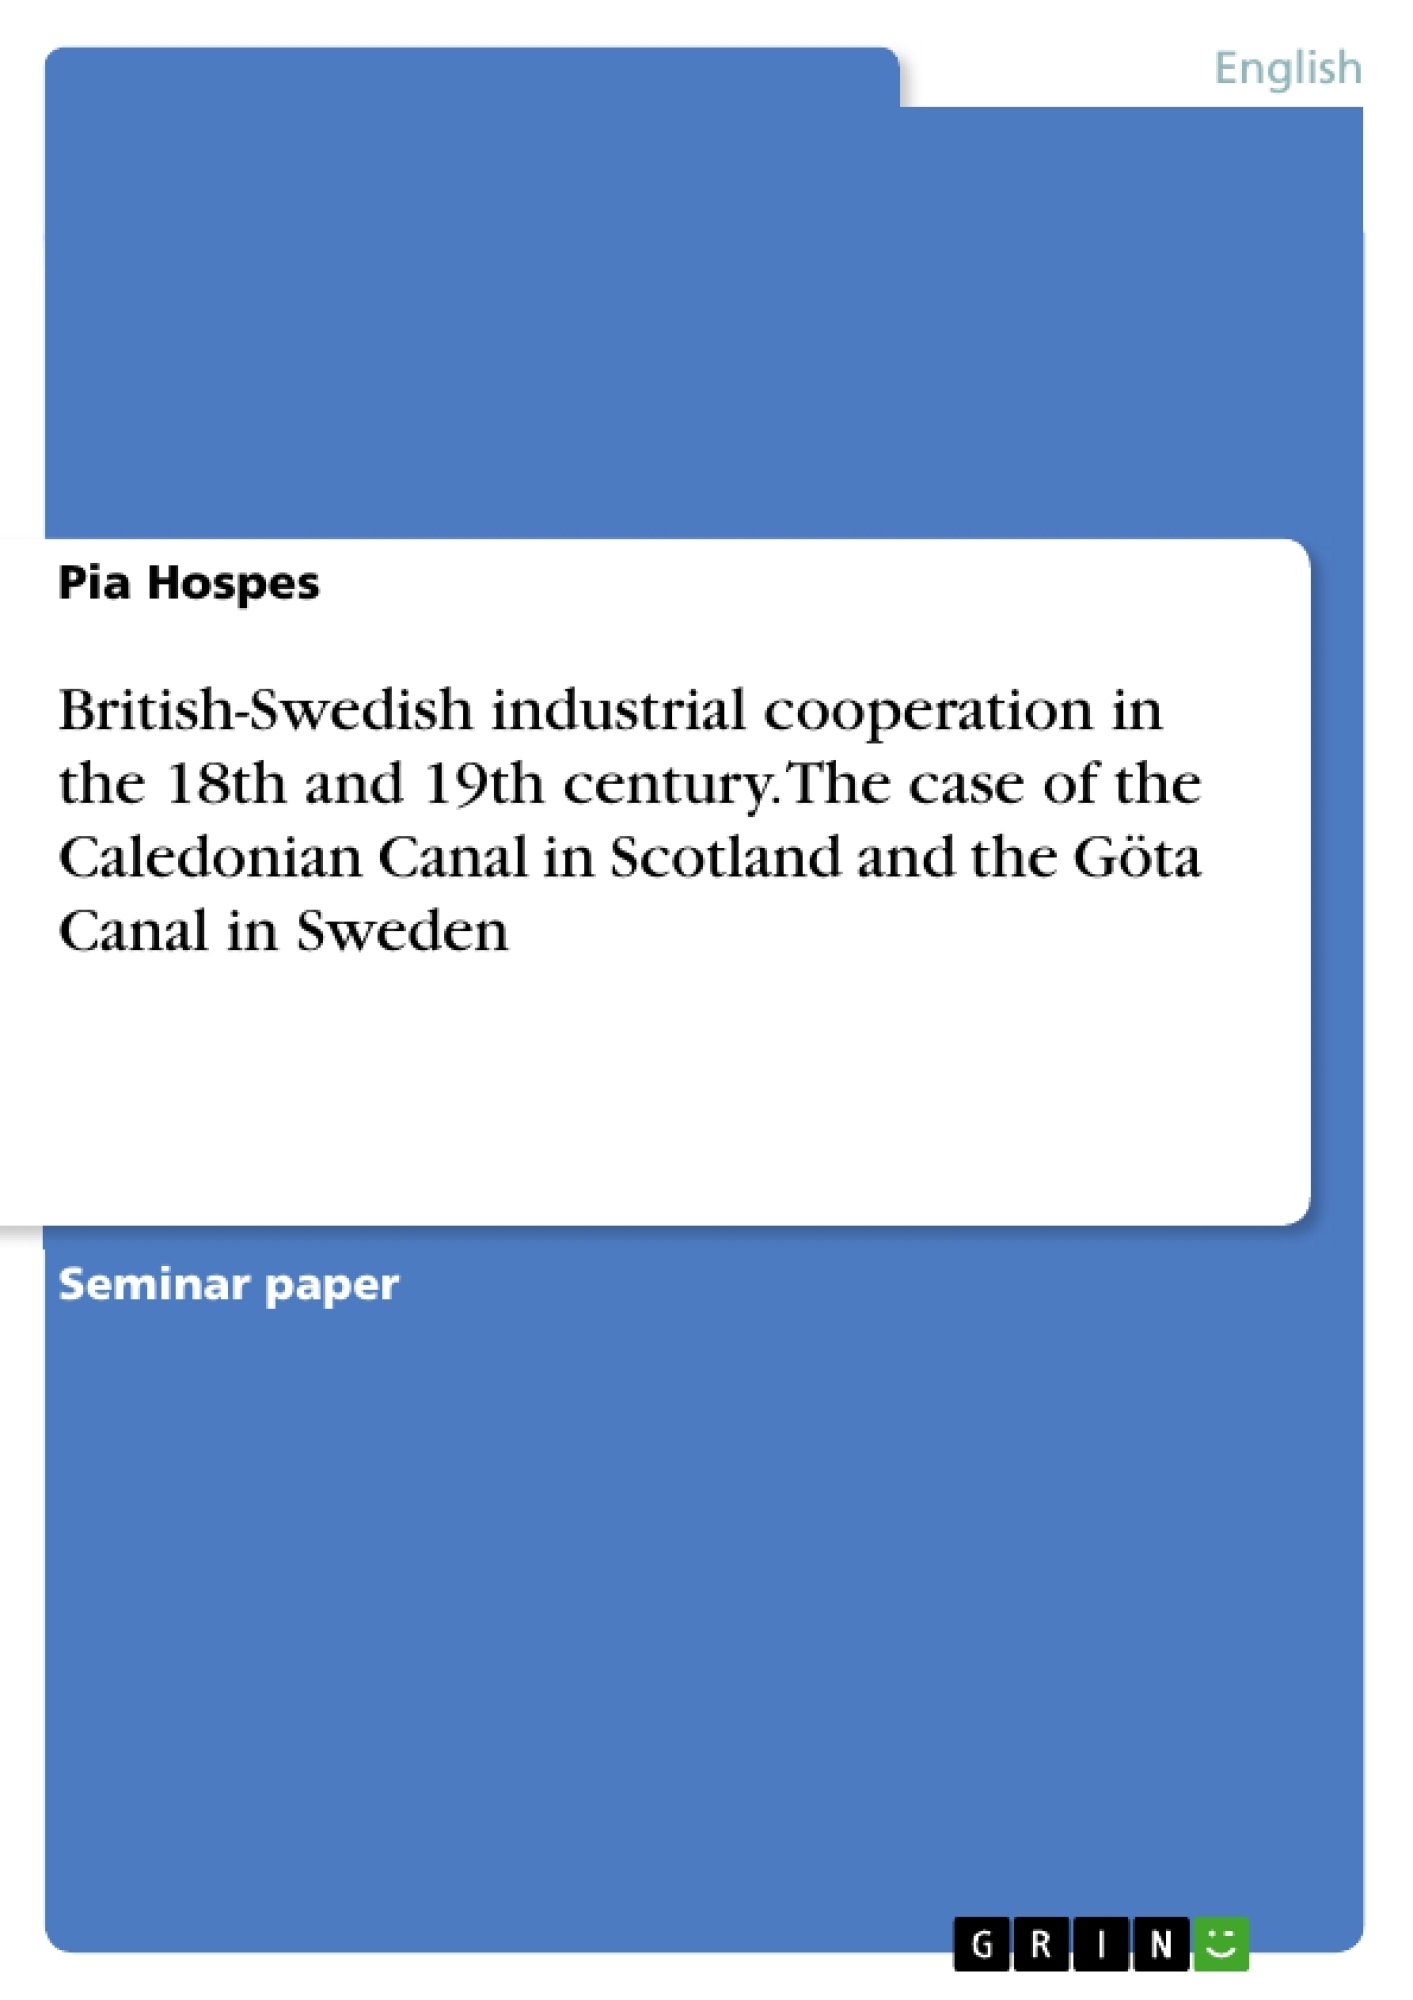 Title: British-Swedish industrial cooperation in the 18th and 19th century. The case of the Caledonian Canal in Scotland and the Göta Canal in Sweden